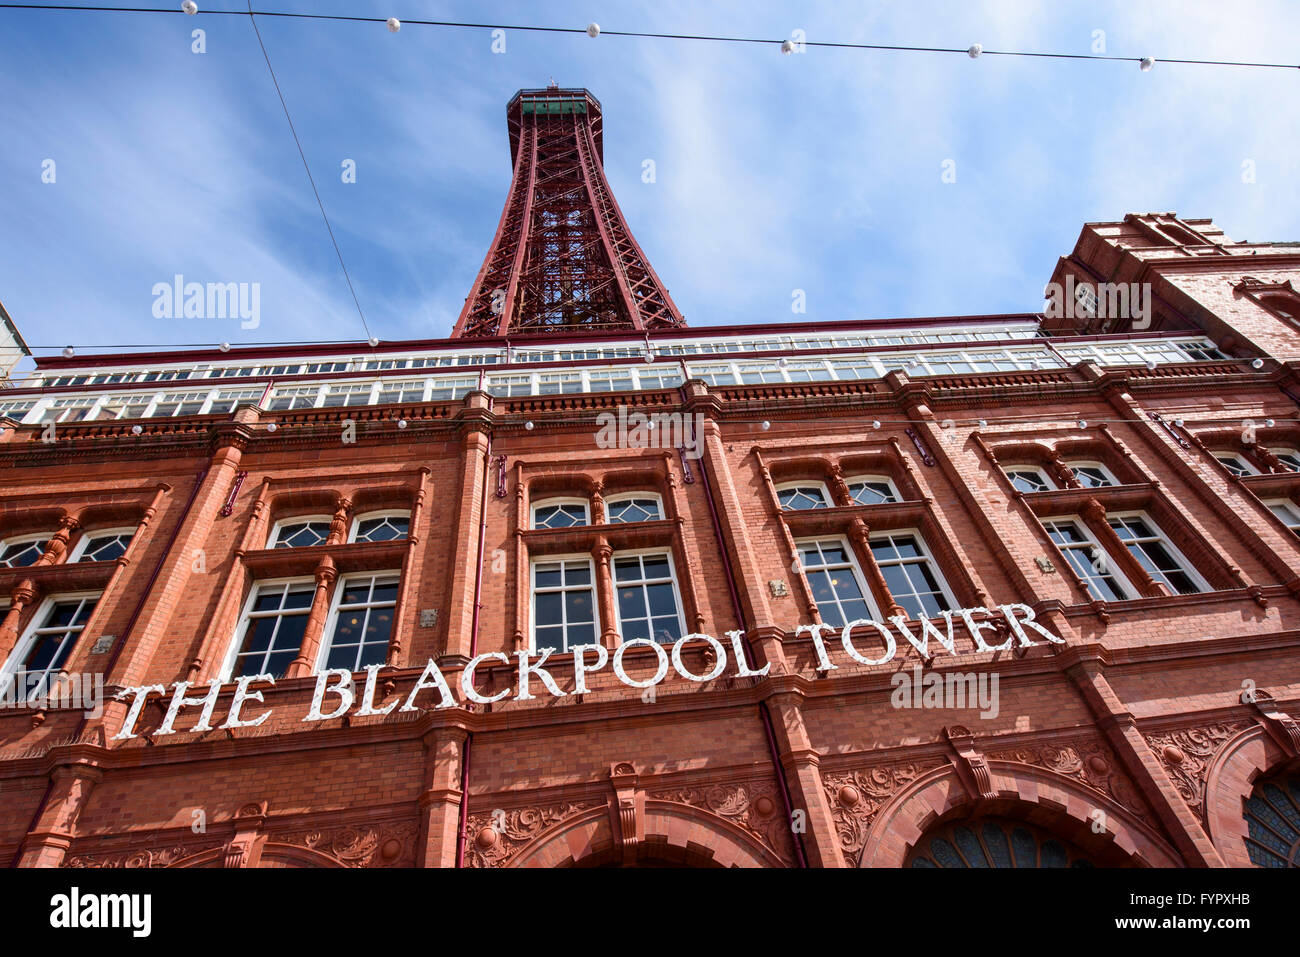 View looking up at Blackpool Tower without scaffolding - Stock Image